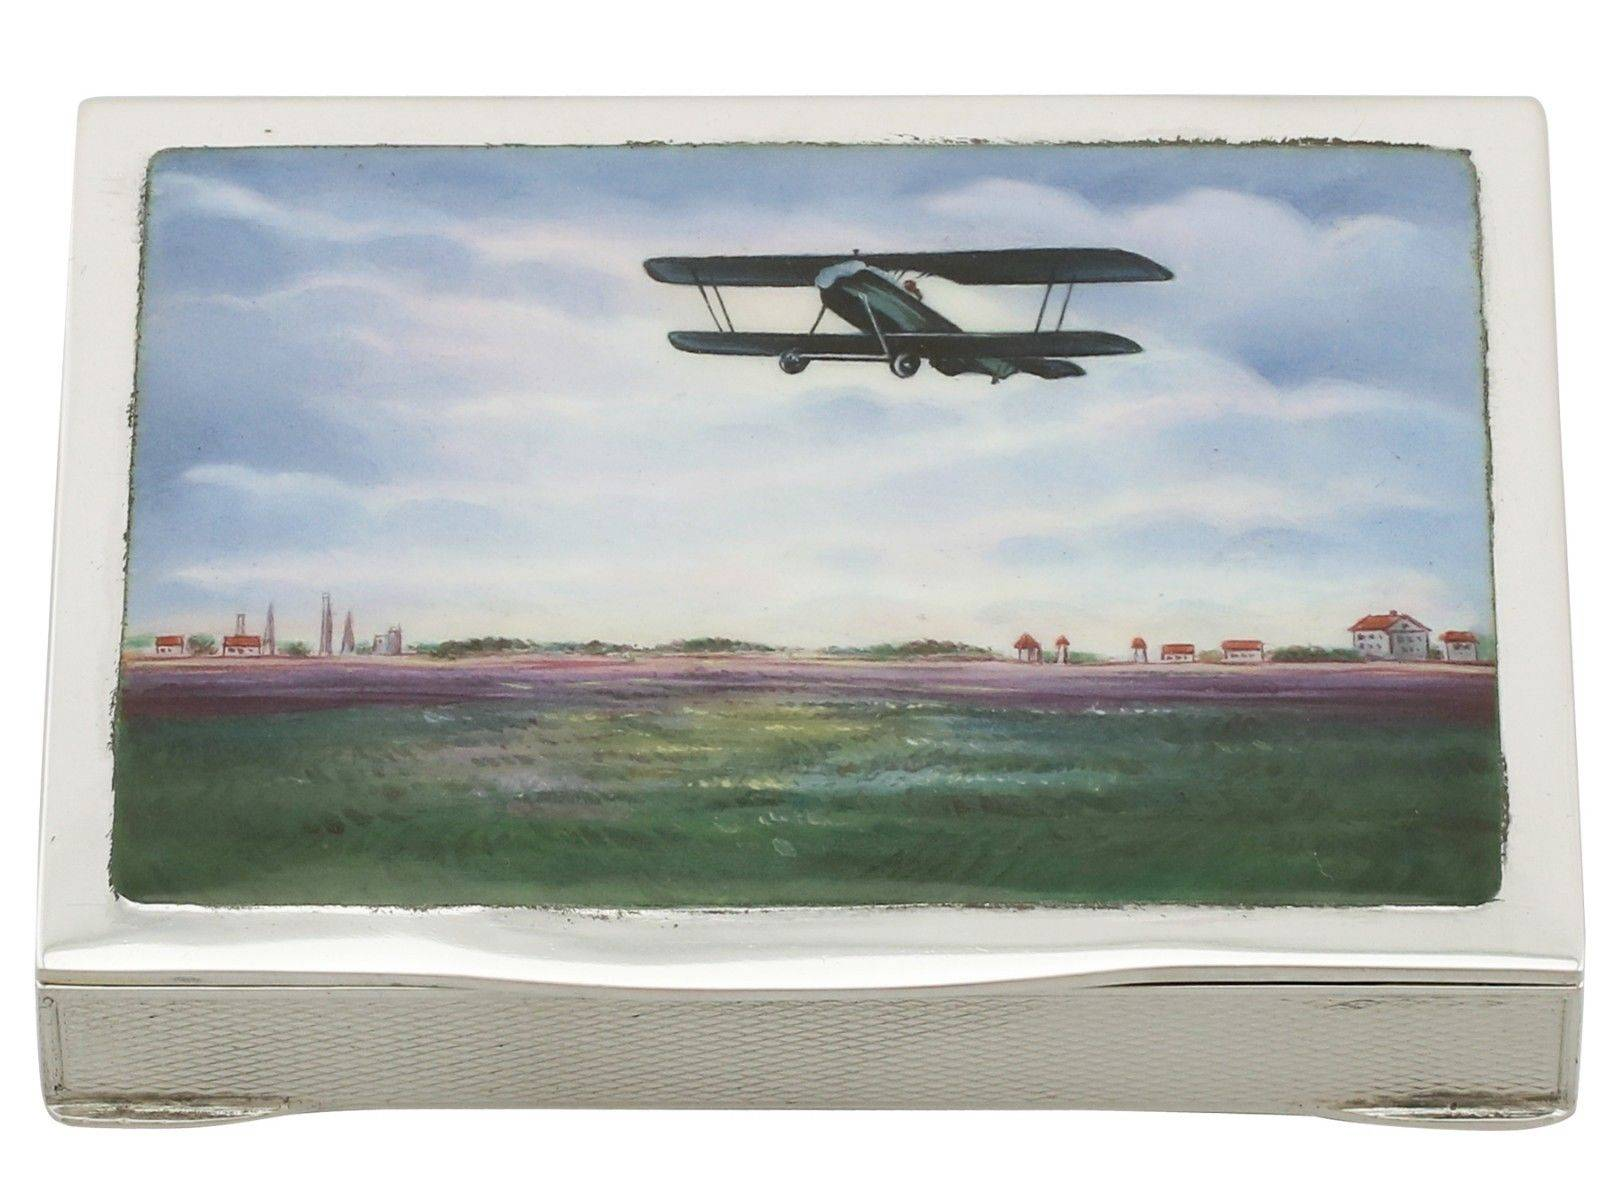 Airplane - Picture ASC Silver London. On Ebay, no: 312214445859